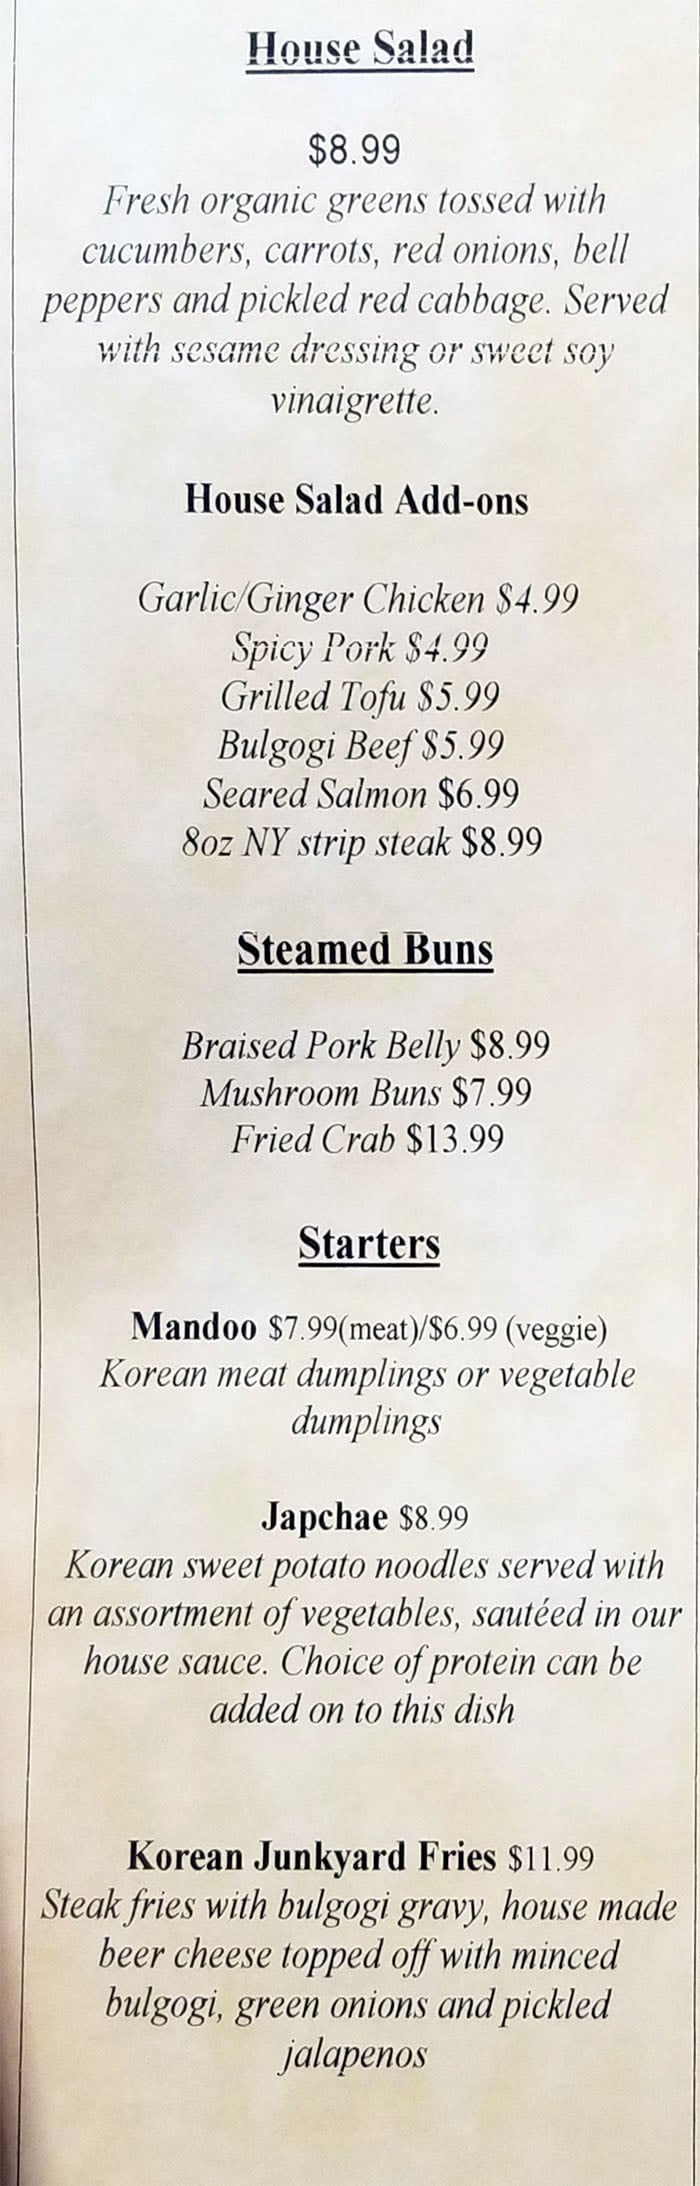 The Angry Korean lunch menu - salad, buns, starters